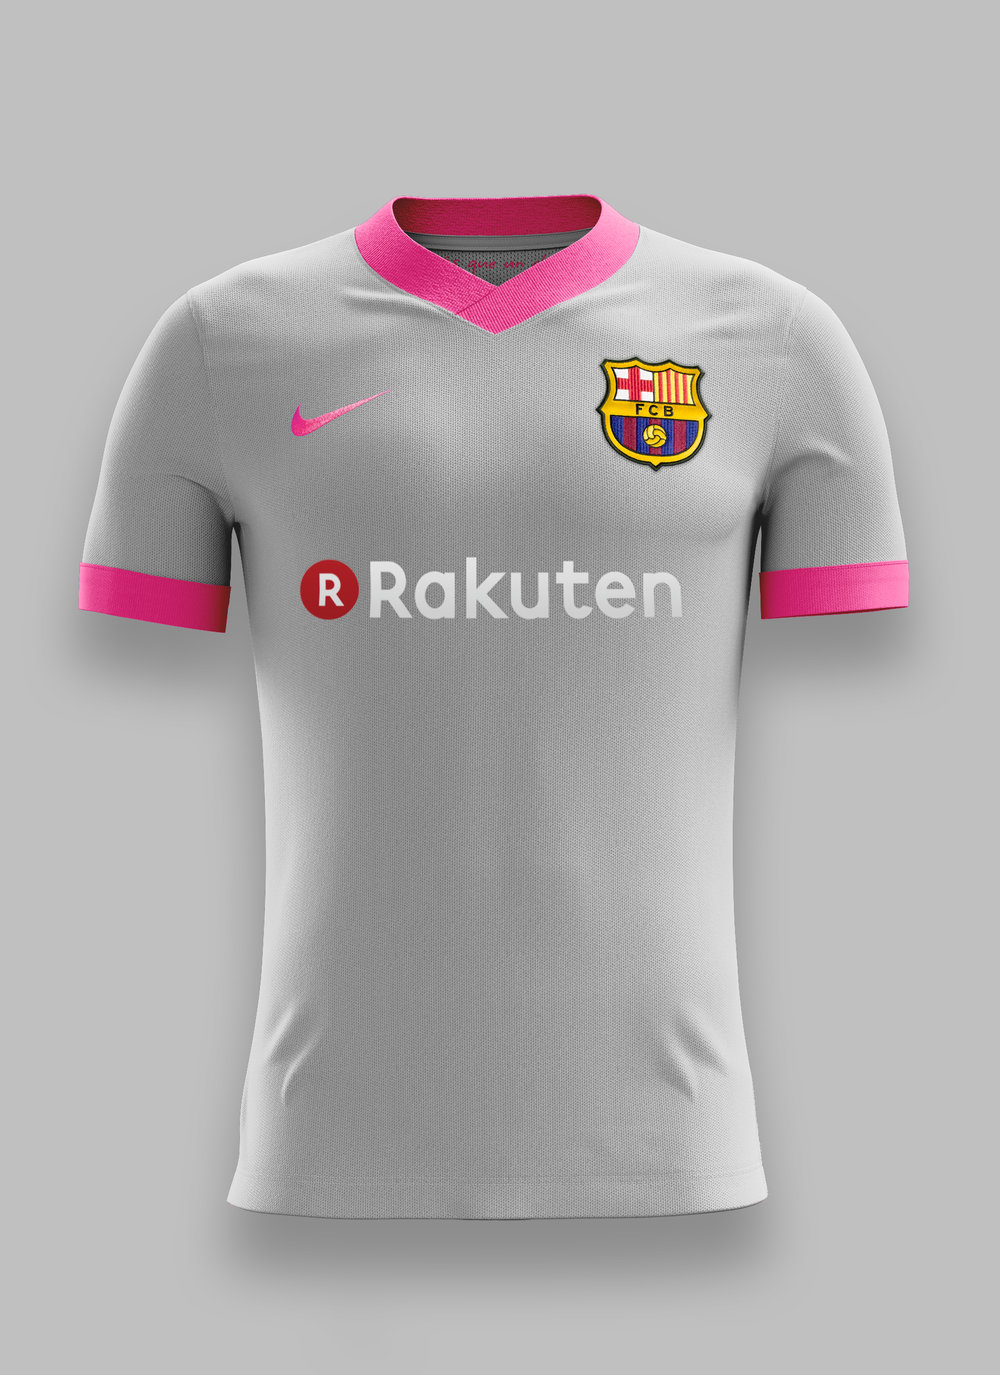 This season s FC Barcelona third kit colorway uses wolf grey and hyper  pink. The pink gives the kit an explosive look while the grey demonstrates  ... e37d468cbb16d